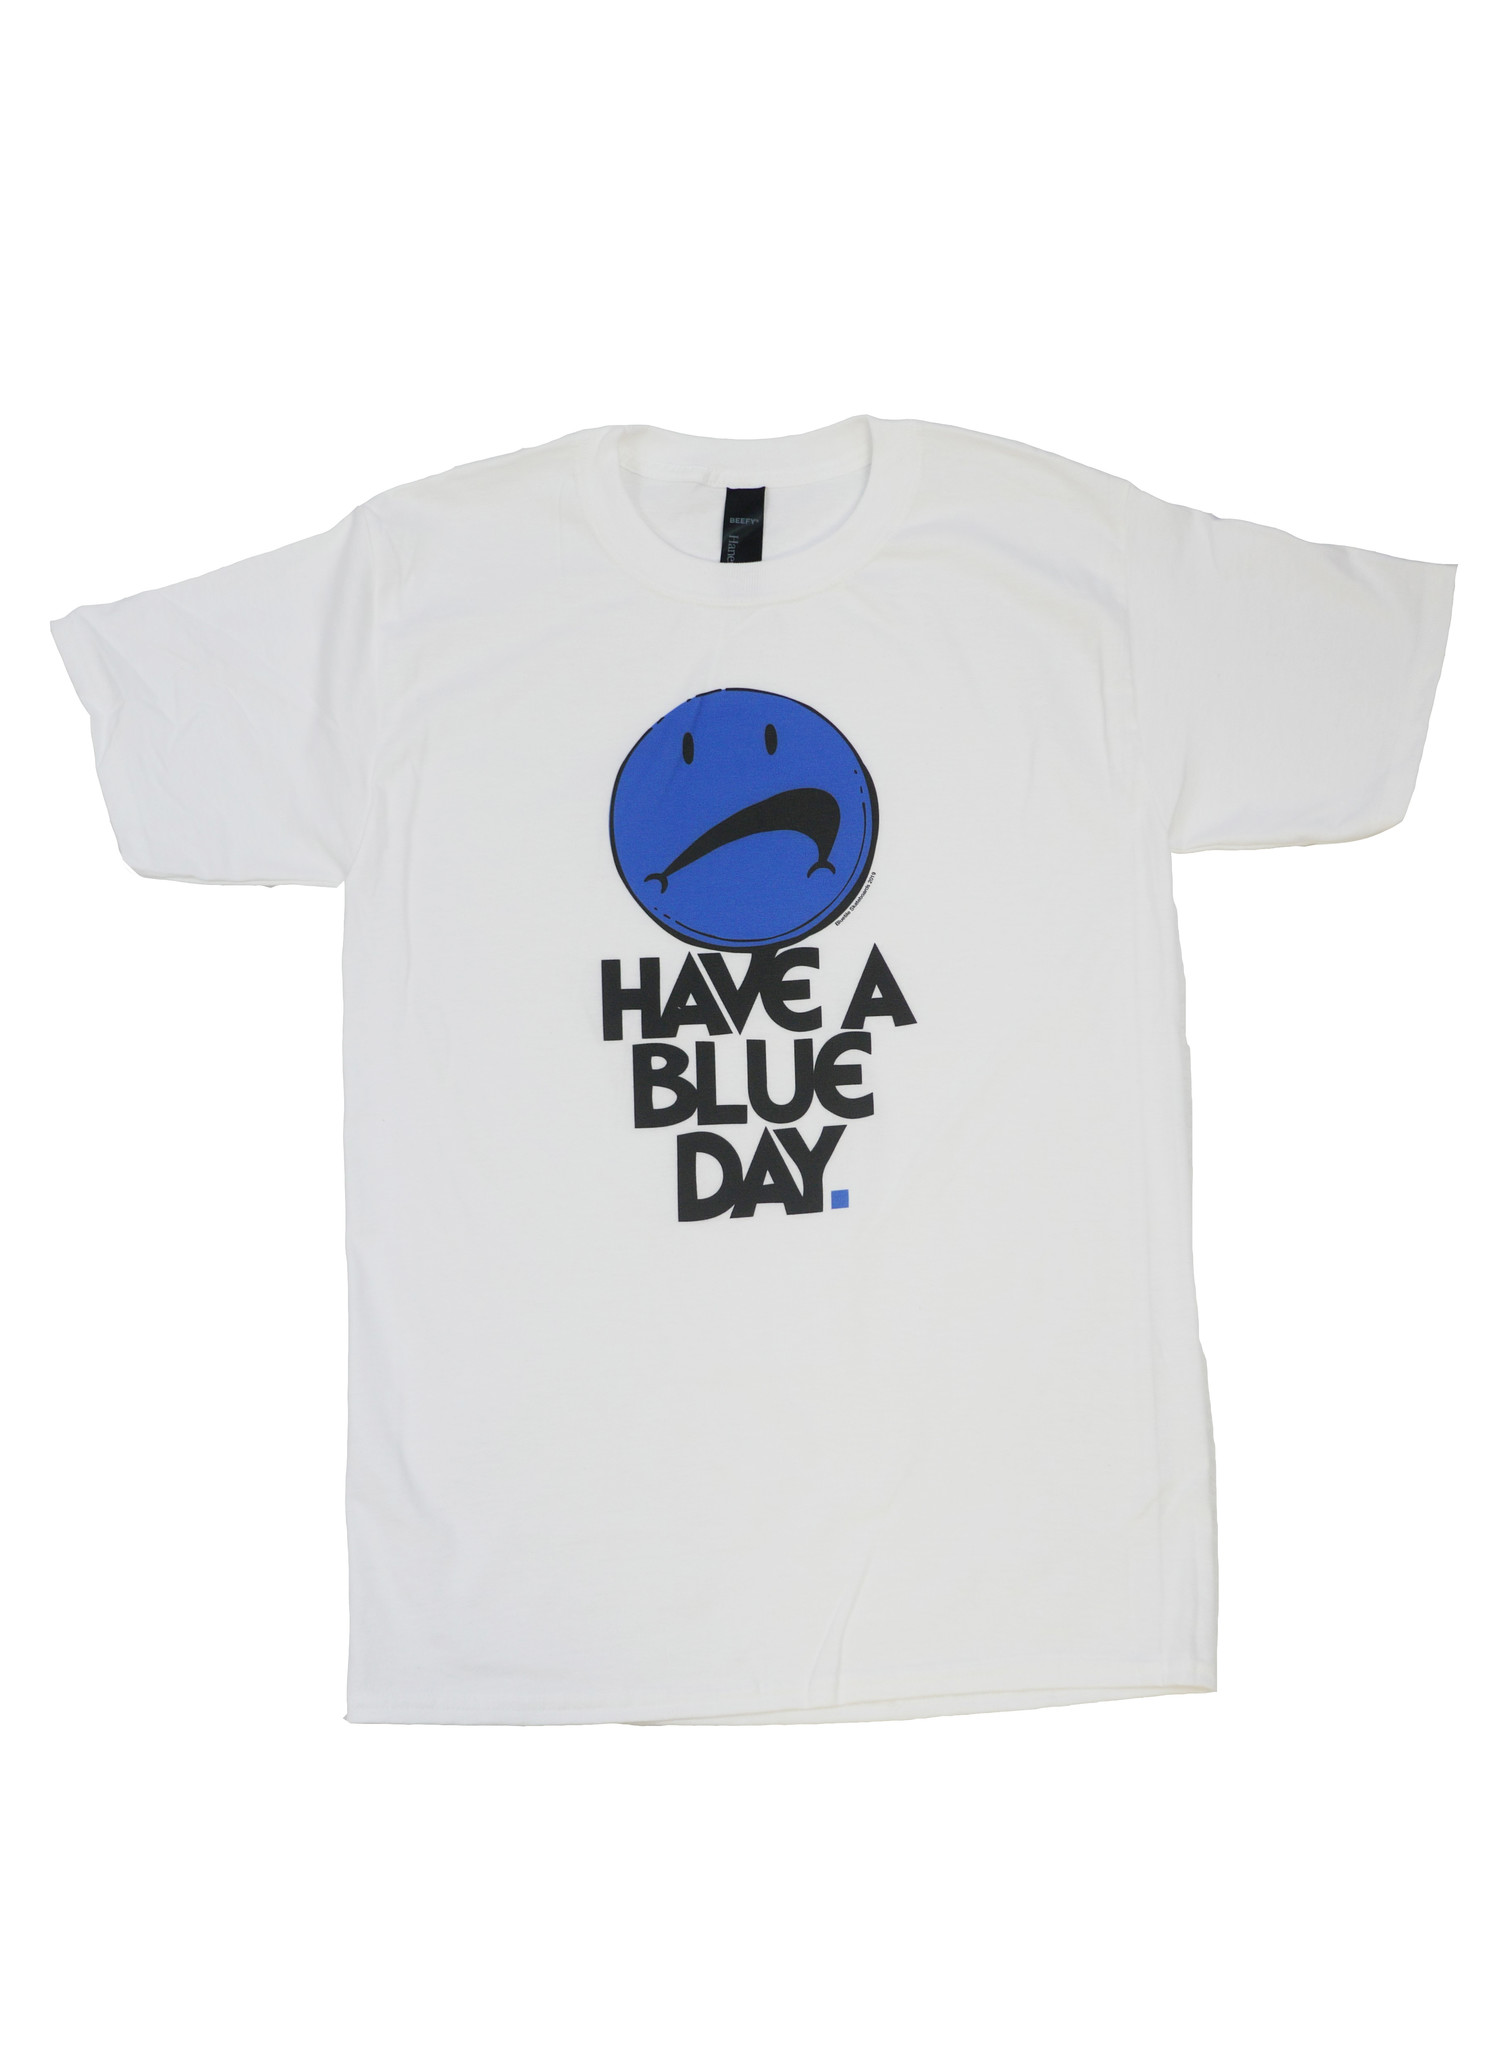 BLUETILE BLUETILE HAVE A BLUE DAY T-SHIRT WHITE